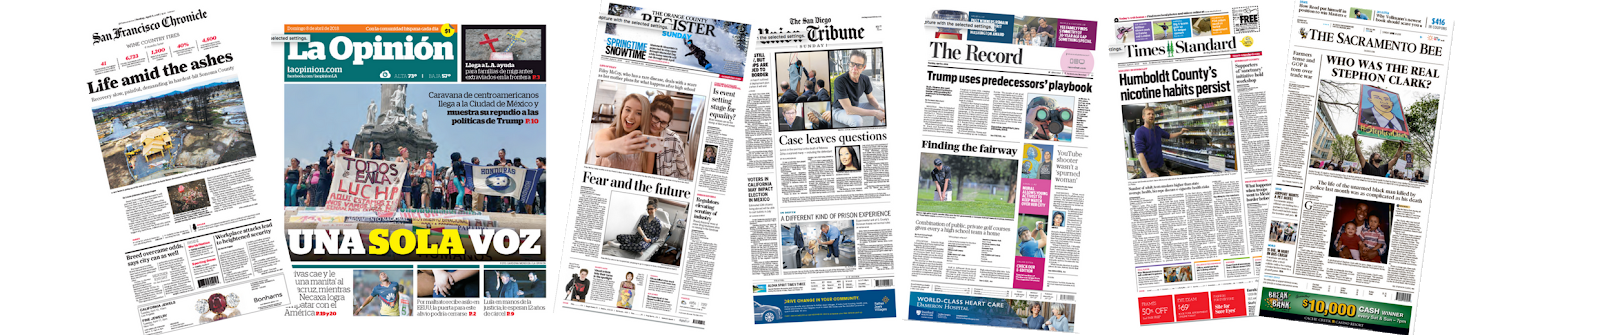 Examples of various newspapers with different for headings.